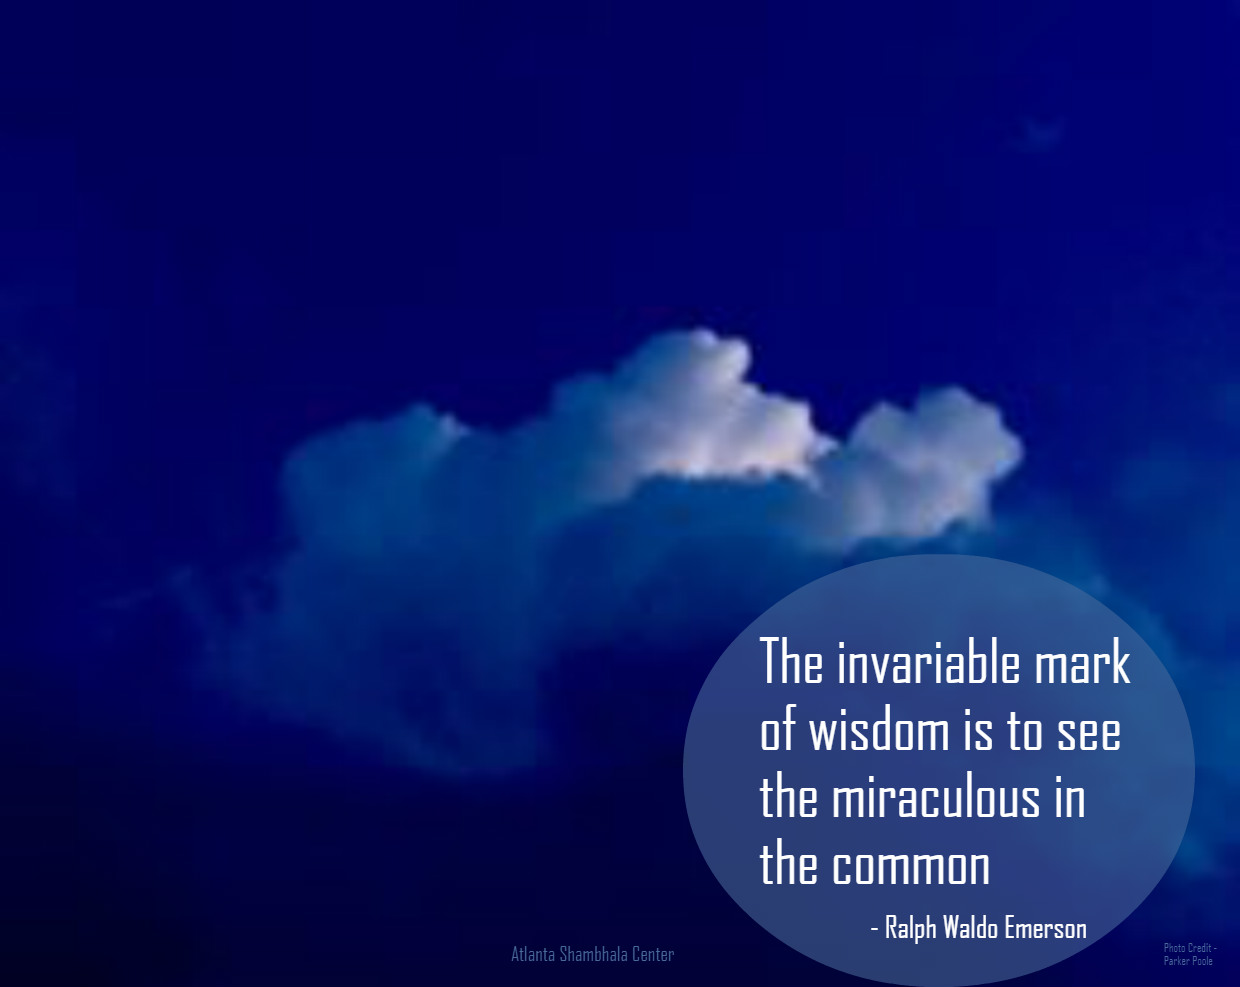 the-invariable-mark-of-wisdomis-to-see-the-miraculous-in-the-common